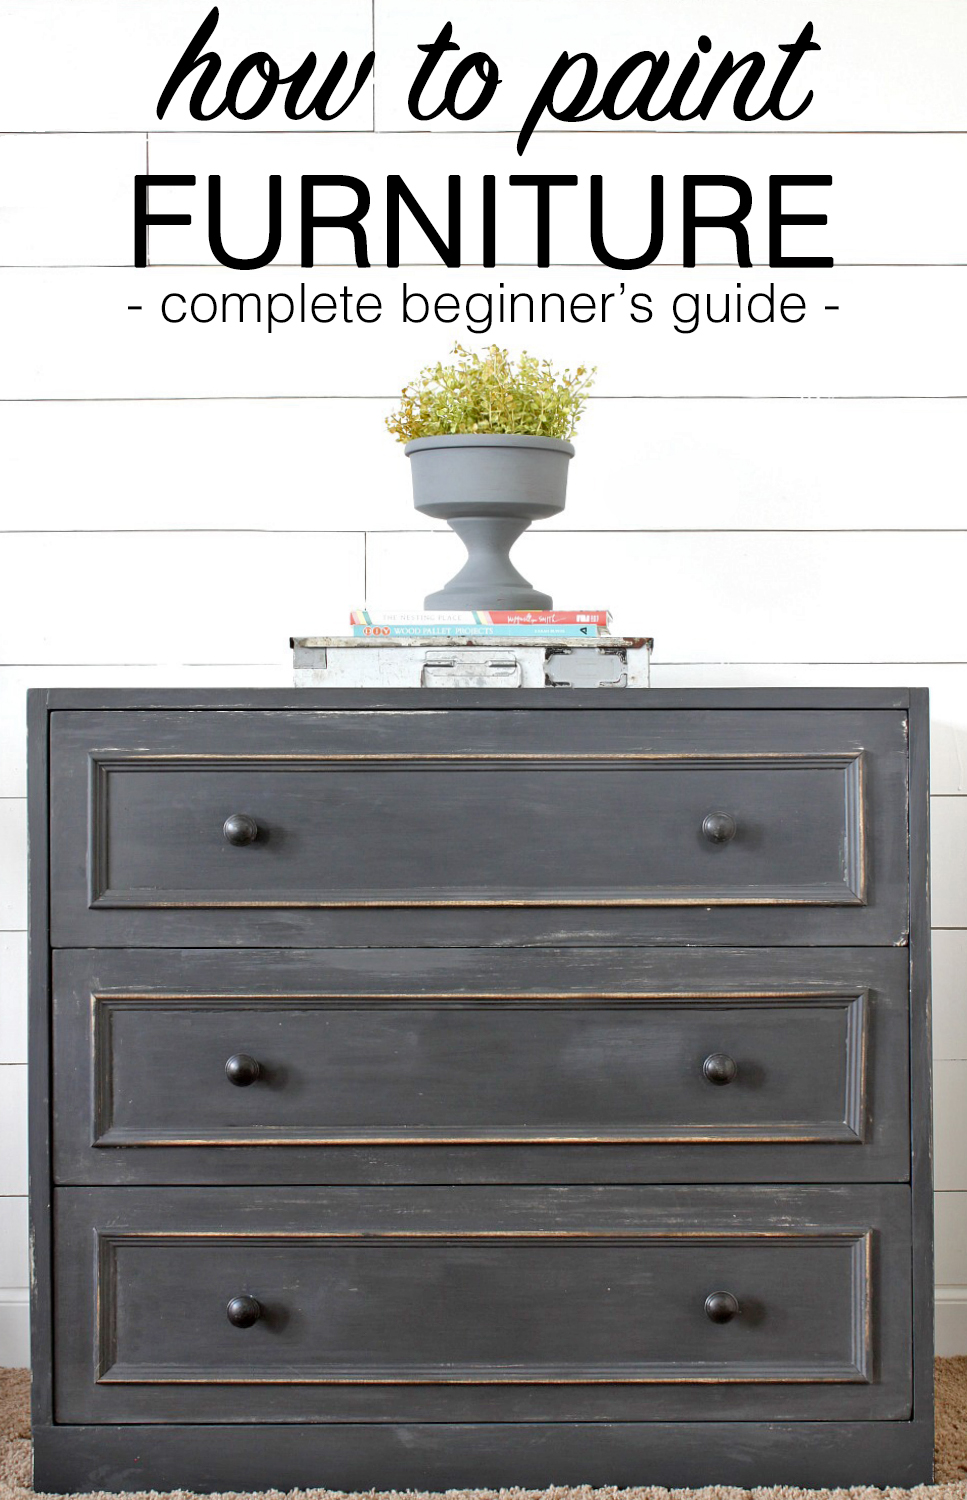 the complete guide on how to paint furniture